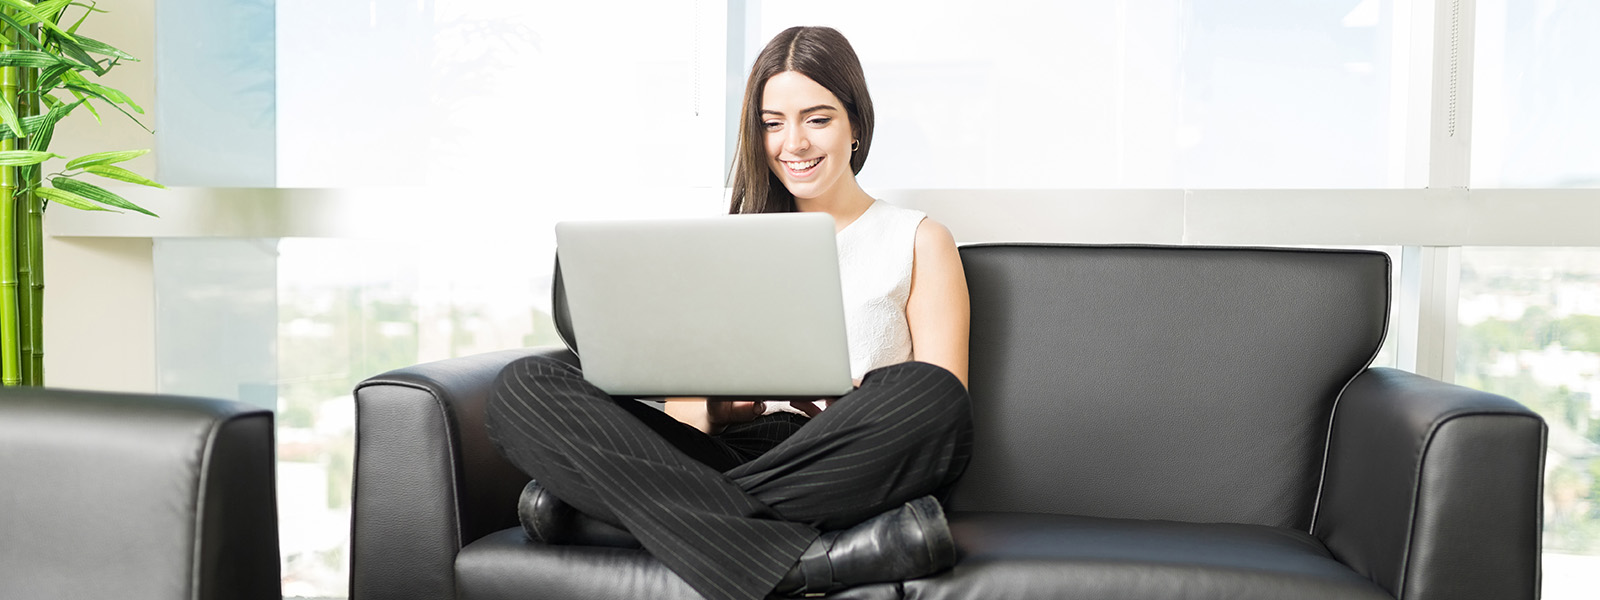 Smiling woman with legs crossed sitting on couch working on laptop